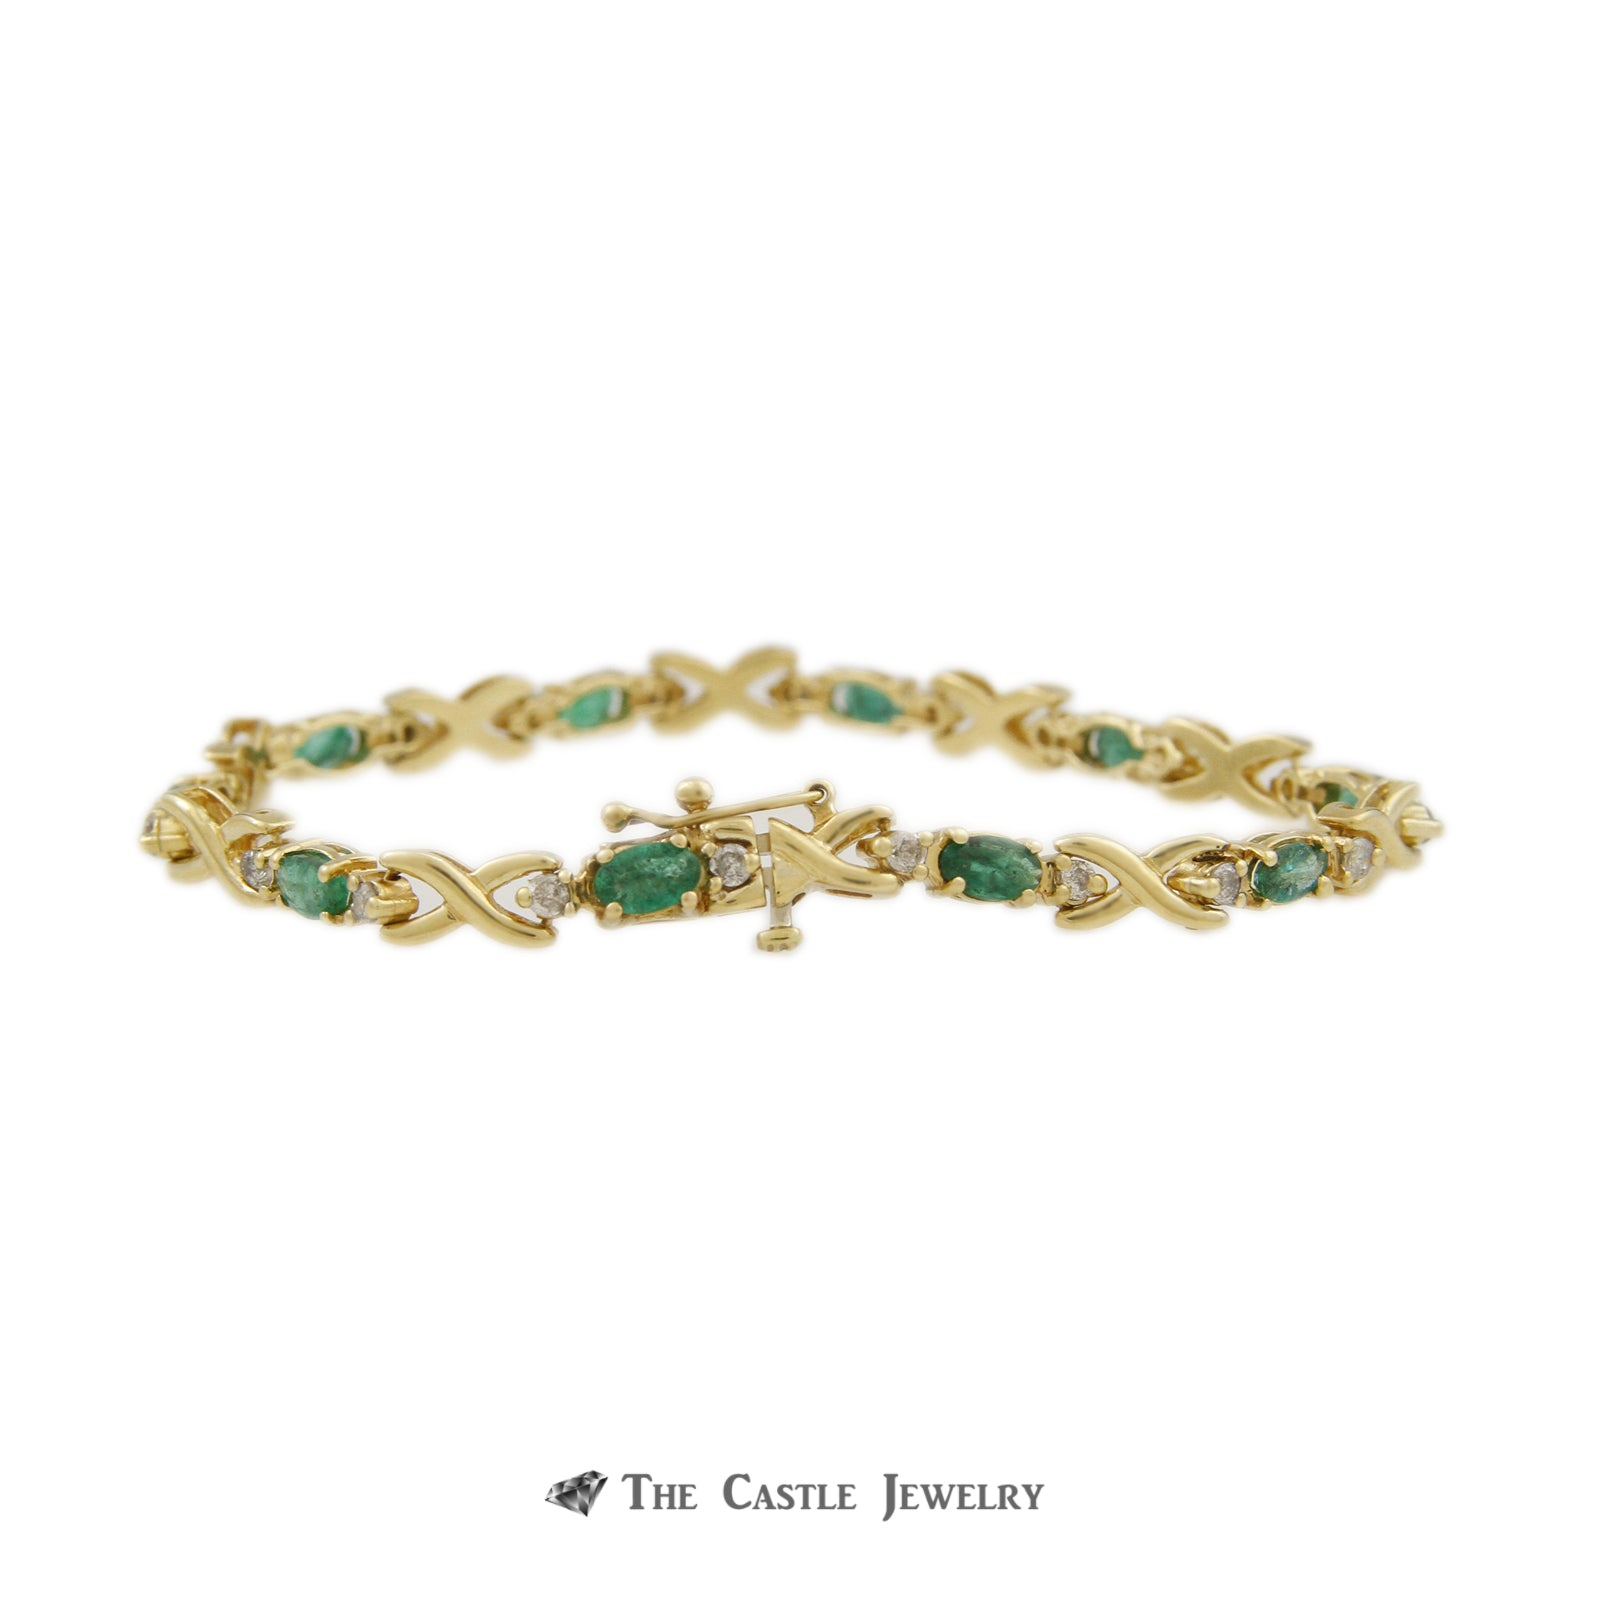 Oval Emerald Bracelet with X Links & Diamond Accents in 14K Yellow Gold-2